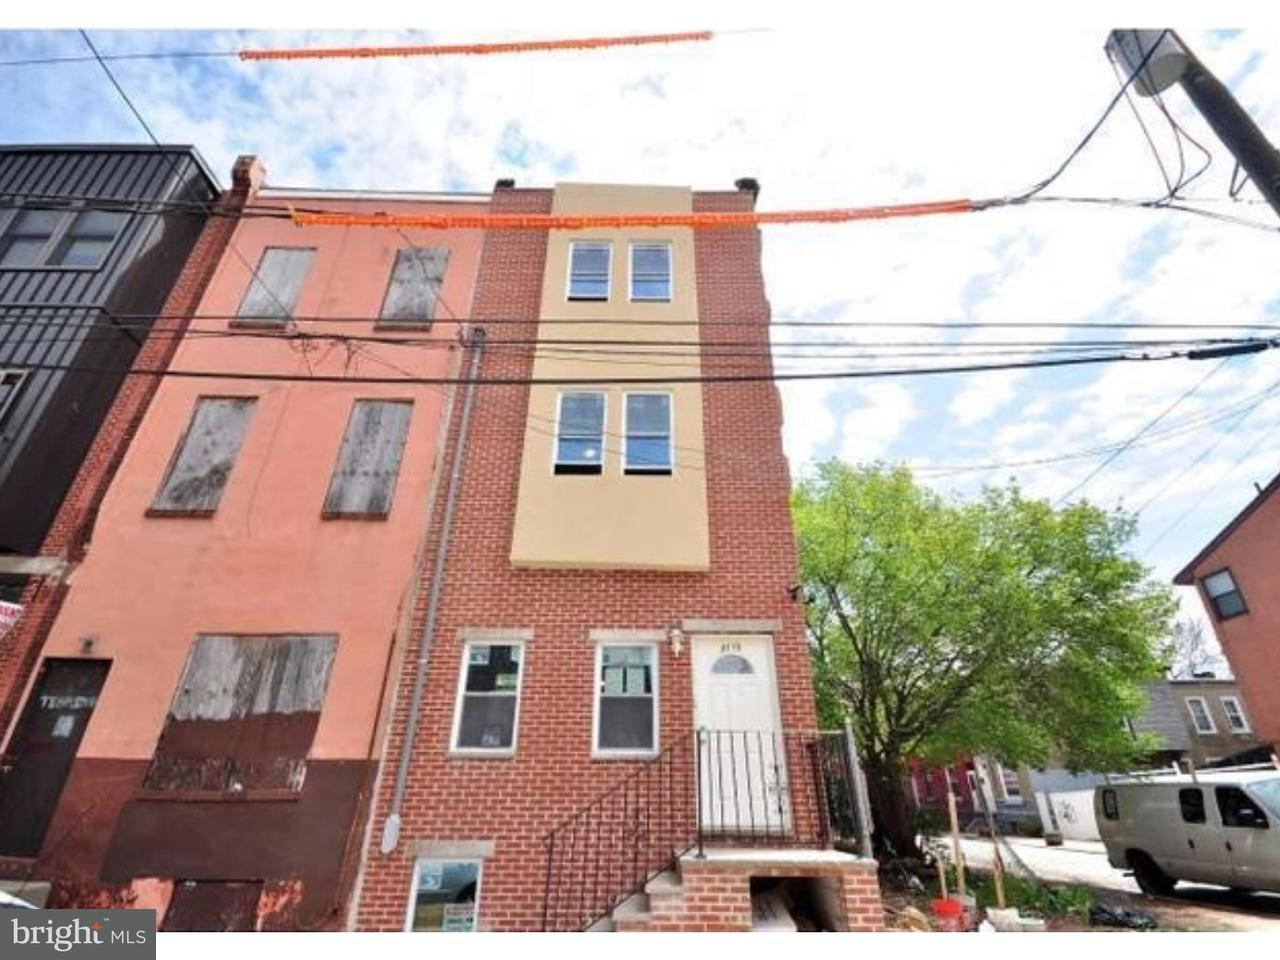 2115 N 18TH Philadelphia, PA 19121